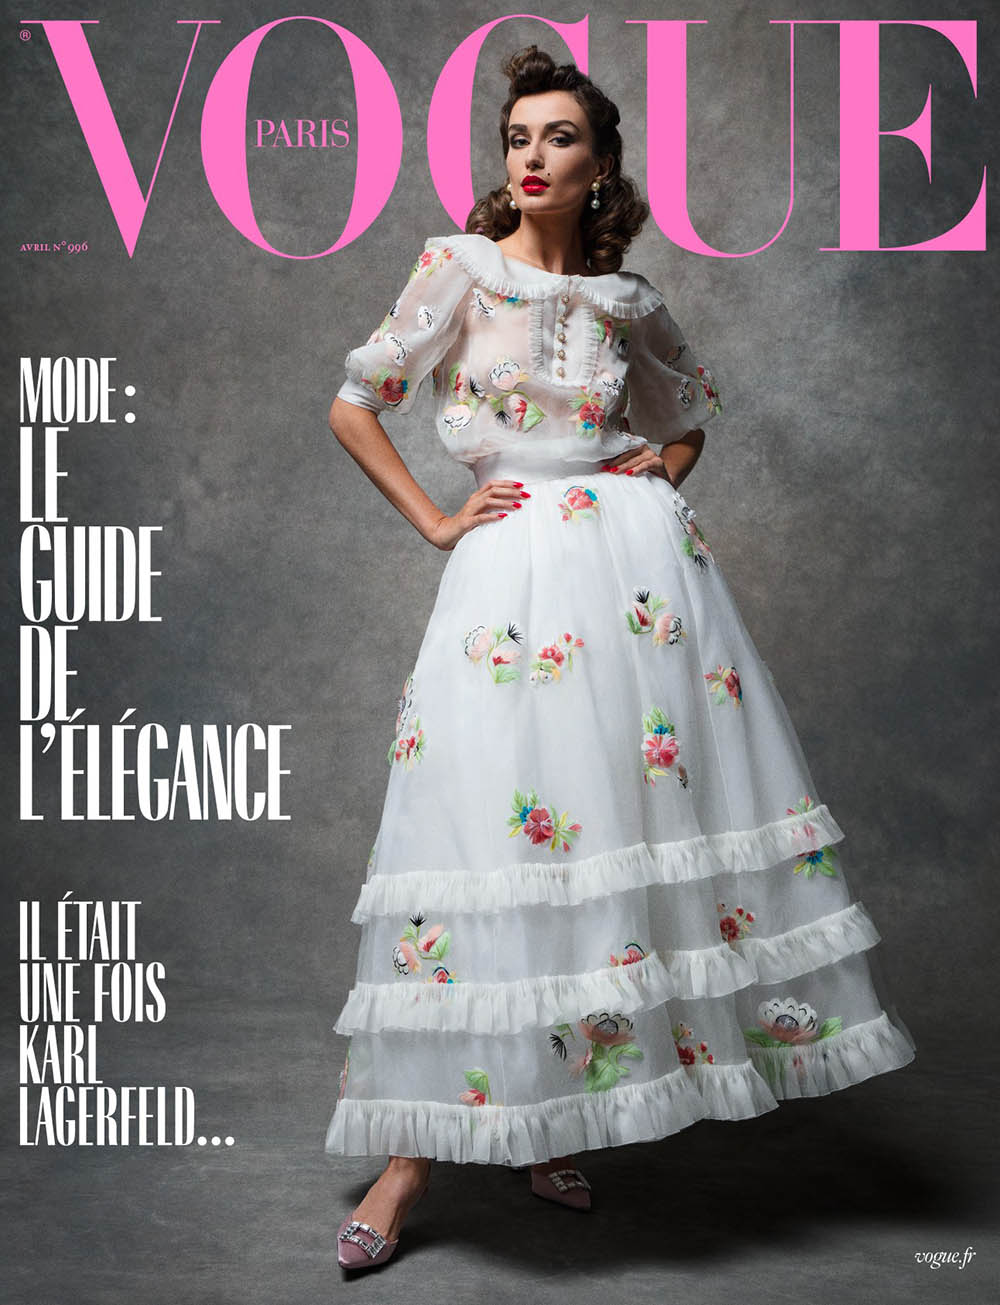 Adut Akech, Raquel Zimmermann and Andreea Diaconu cover Vogue Paris April 2019 by Inez and Vinoodh